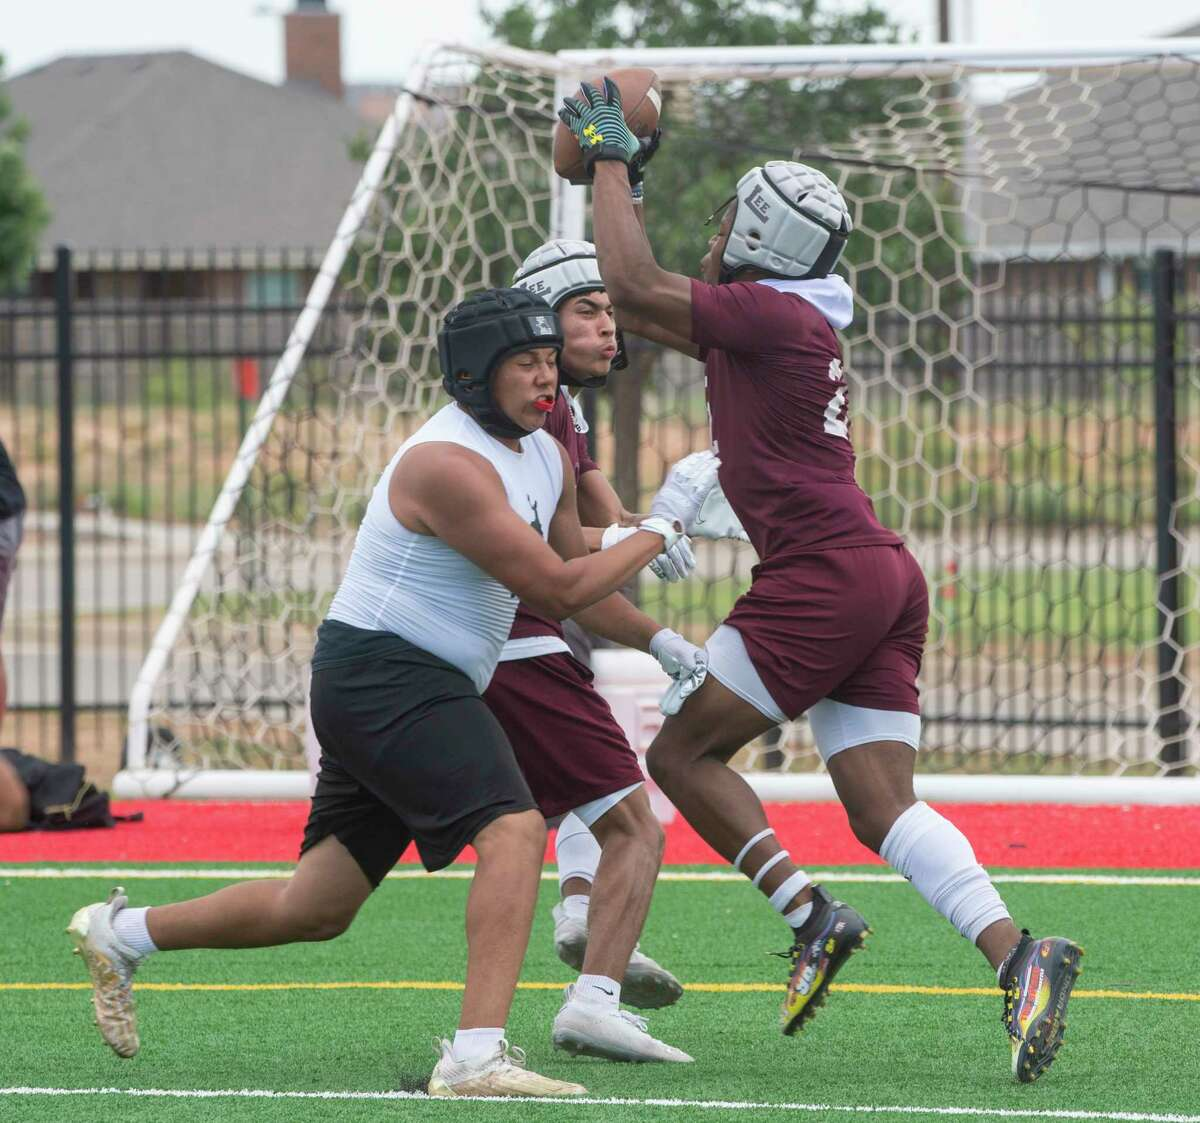 Lee High's Makhilyn Young grabs a pass on a crossing pattern in front of a Lubbock High defender 5/22/2021 in the championship 7-on-7 football game on the auxiliary fields at Scharbauer Sports Complex. Tim Fischer/Reporter-Telegram